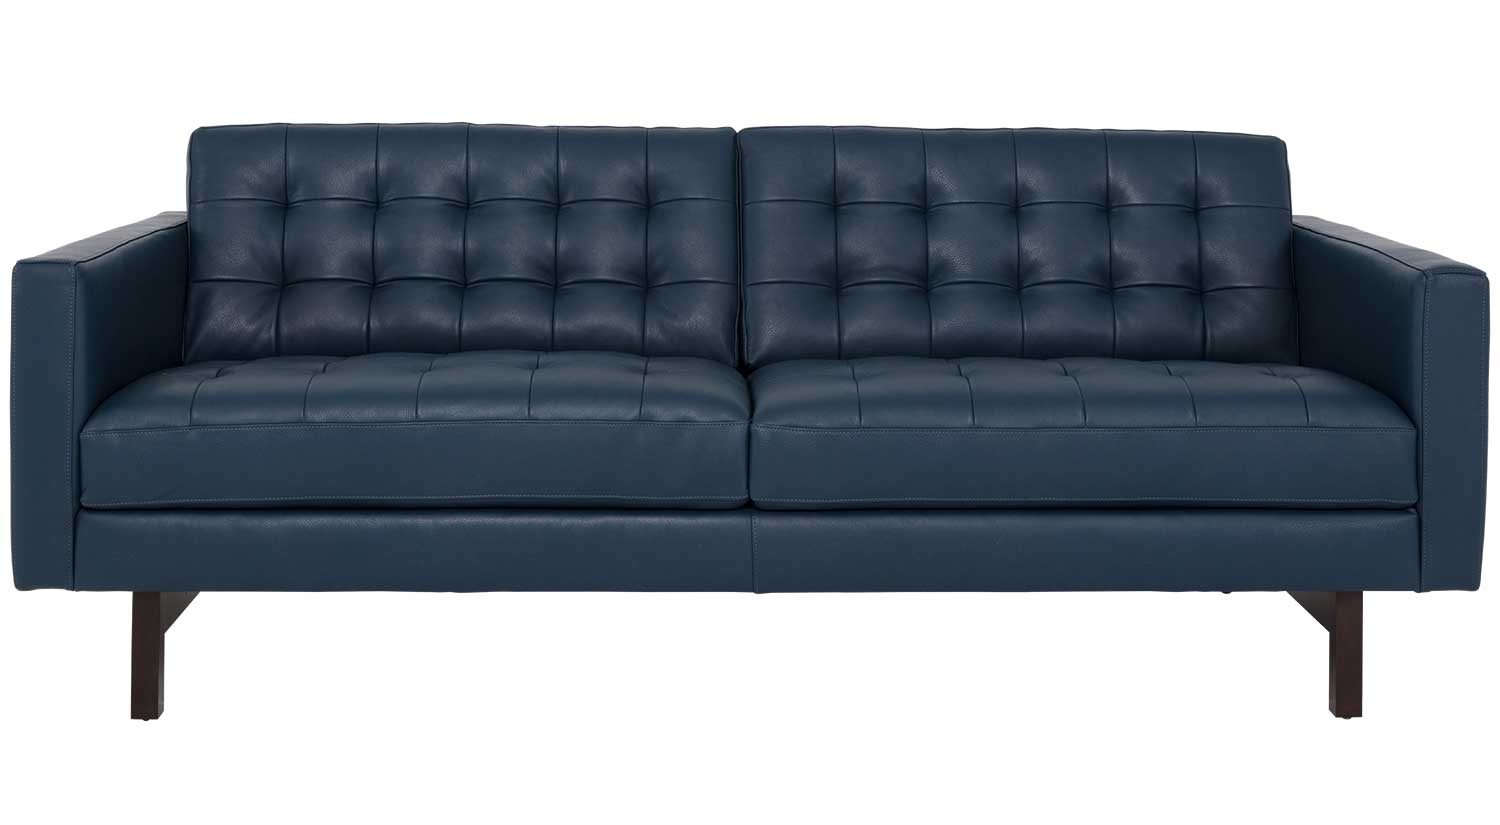 Circle Furniture – Parker Sofa | Designer Sofas Boston | Circle Intended For Parker Sofa Chairs (View 16 of 25)